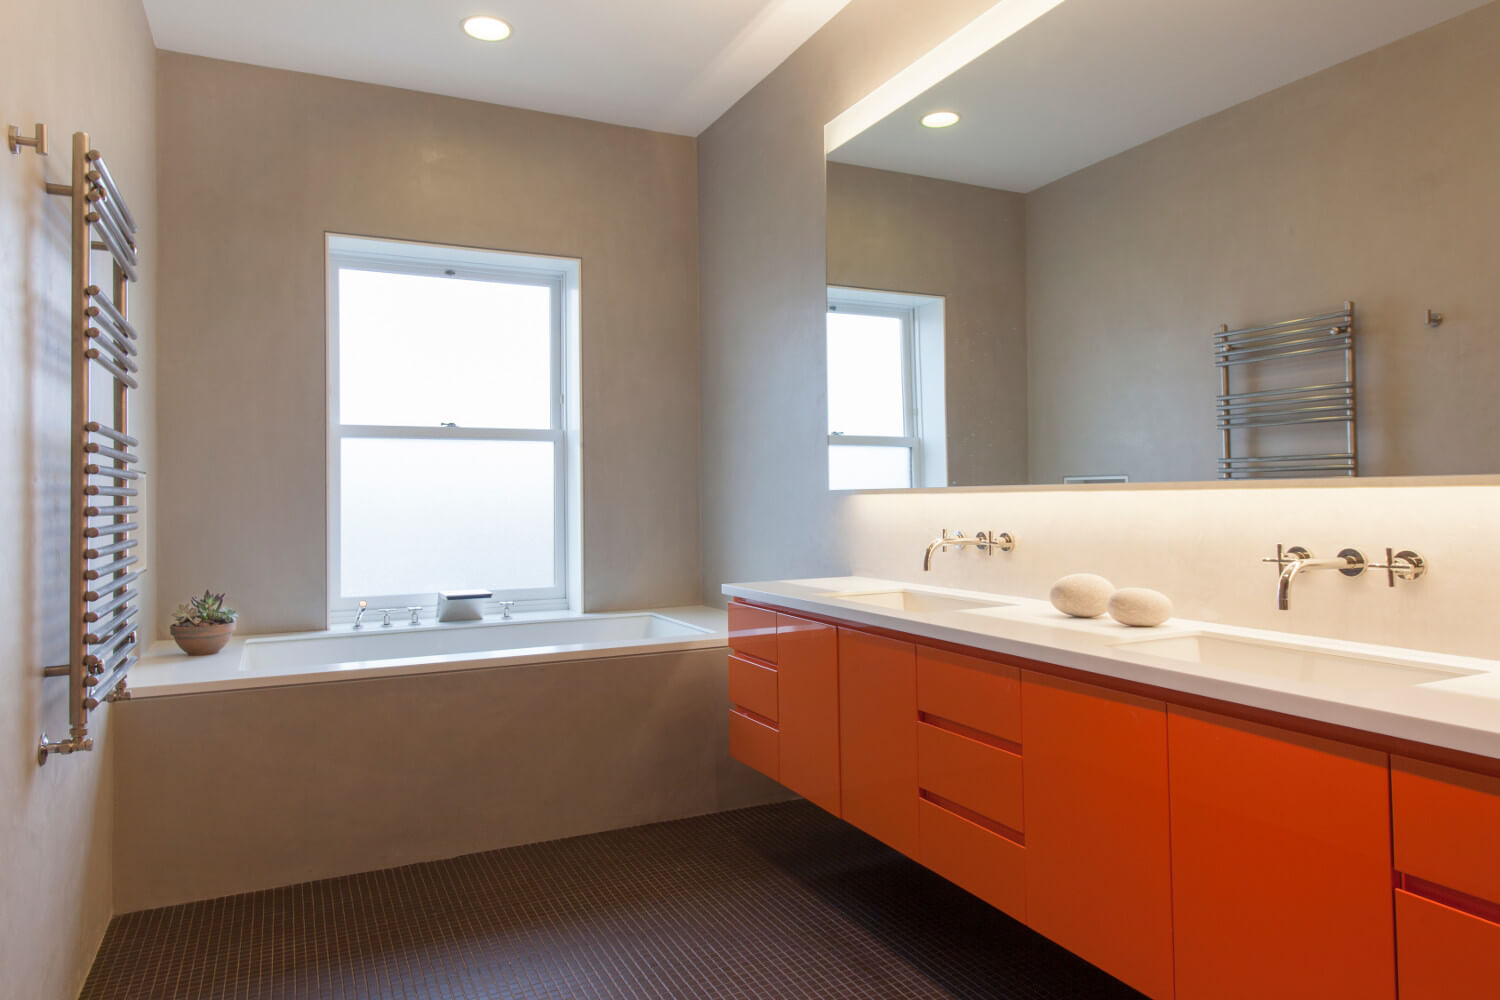 Bathroom lighting integrated into vanity mirror